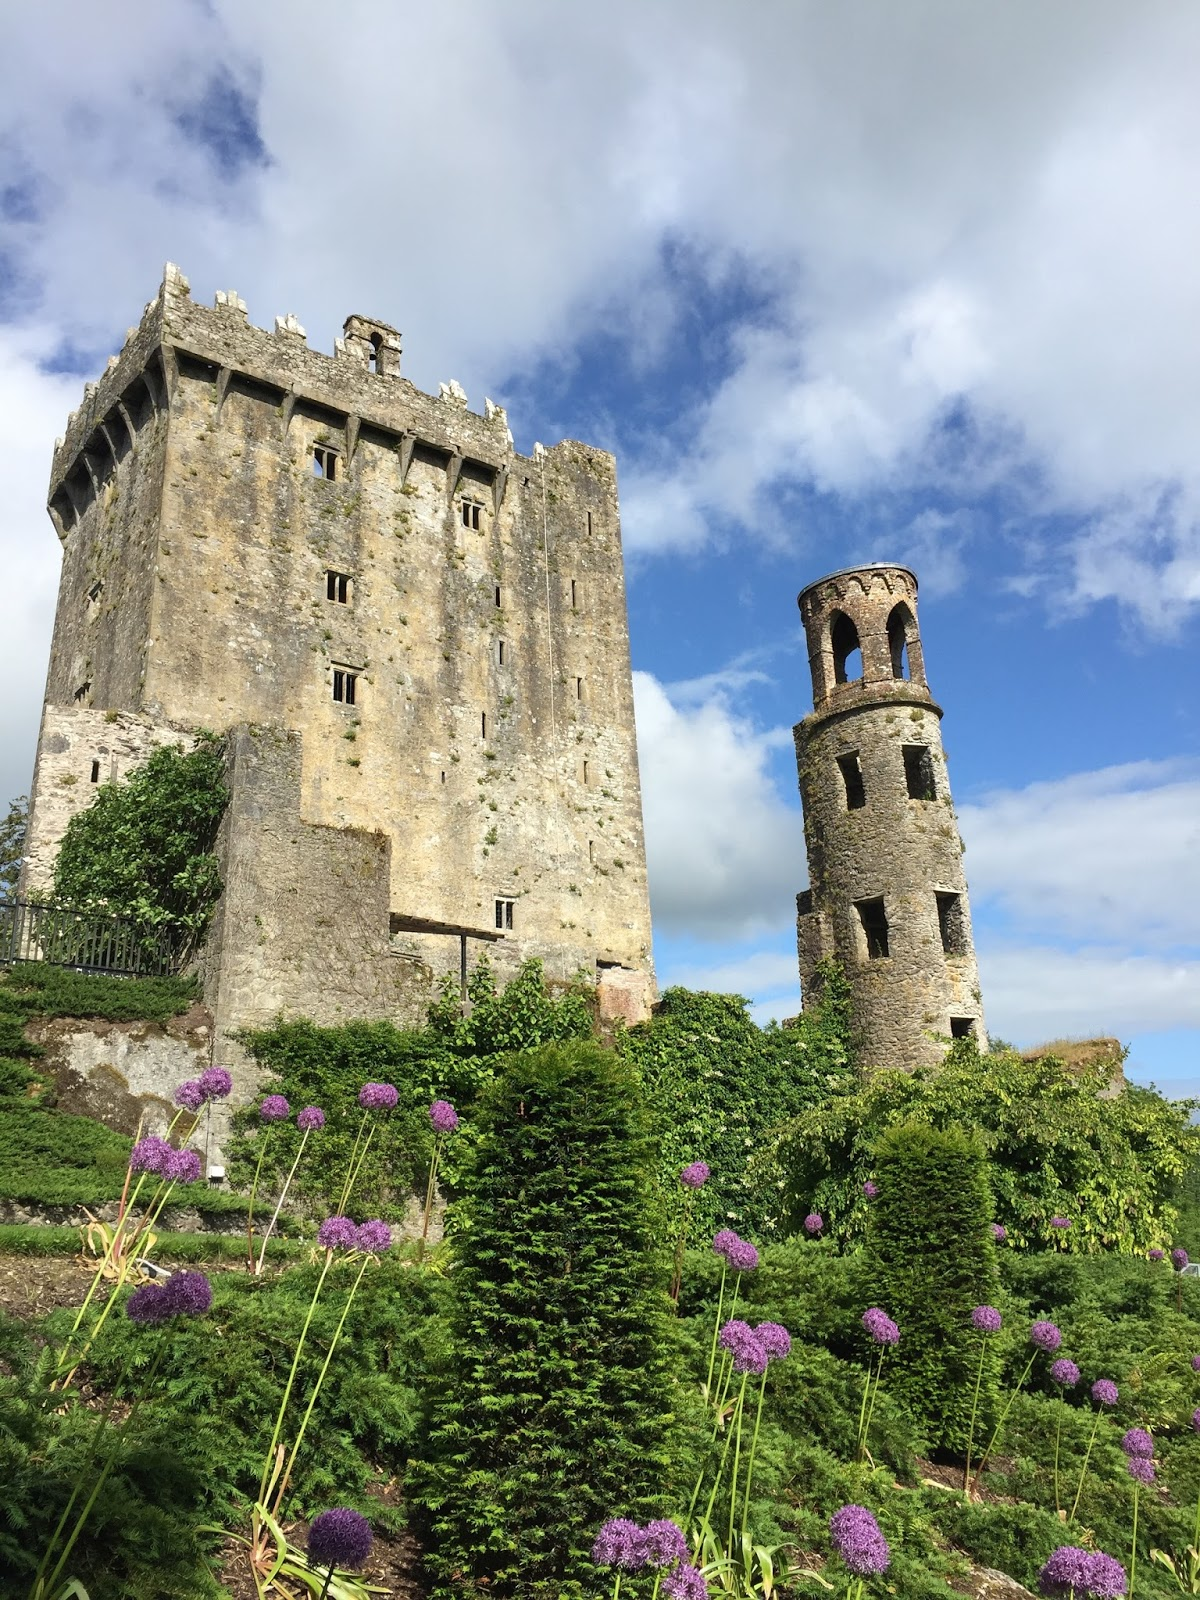 10 places to go in ireland, northern ireland, giant's causeay, galway, kilkenny, jameson distillery, inishmore, aran islands, cliffs of moher, blarney stone, blarnery castle and gardens